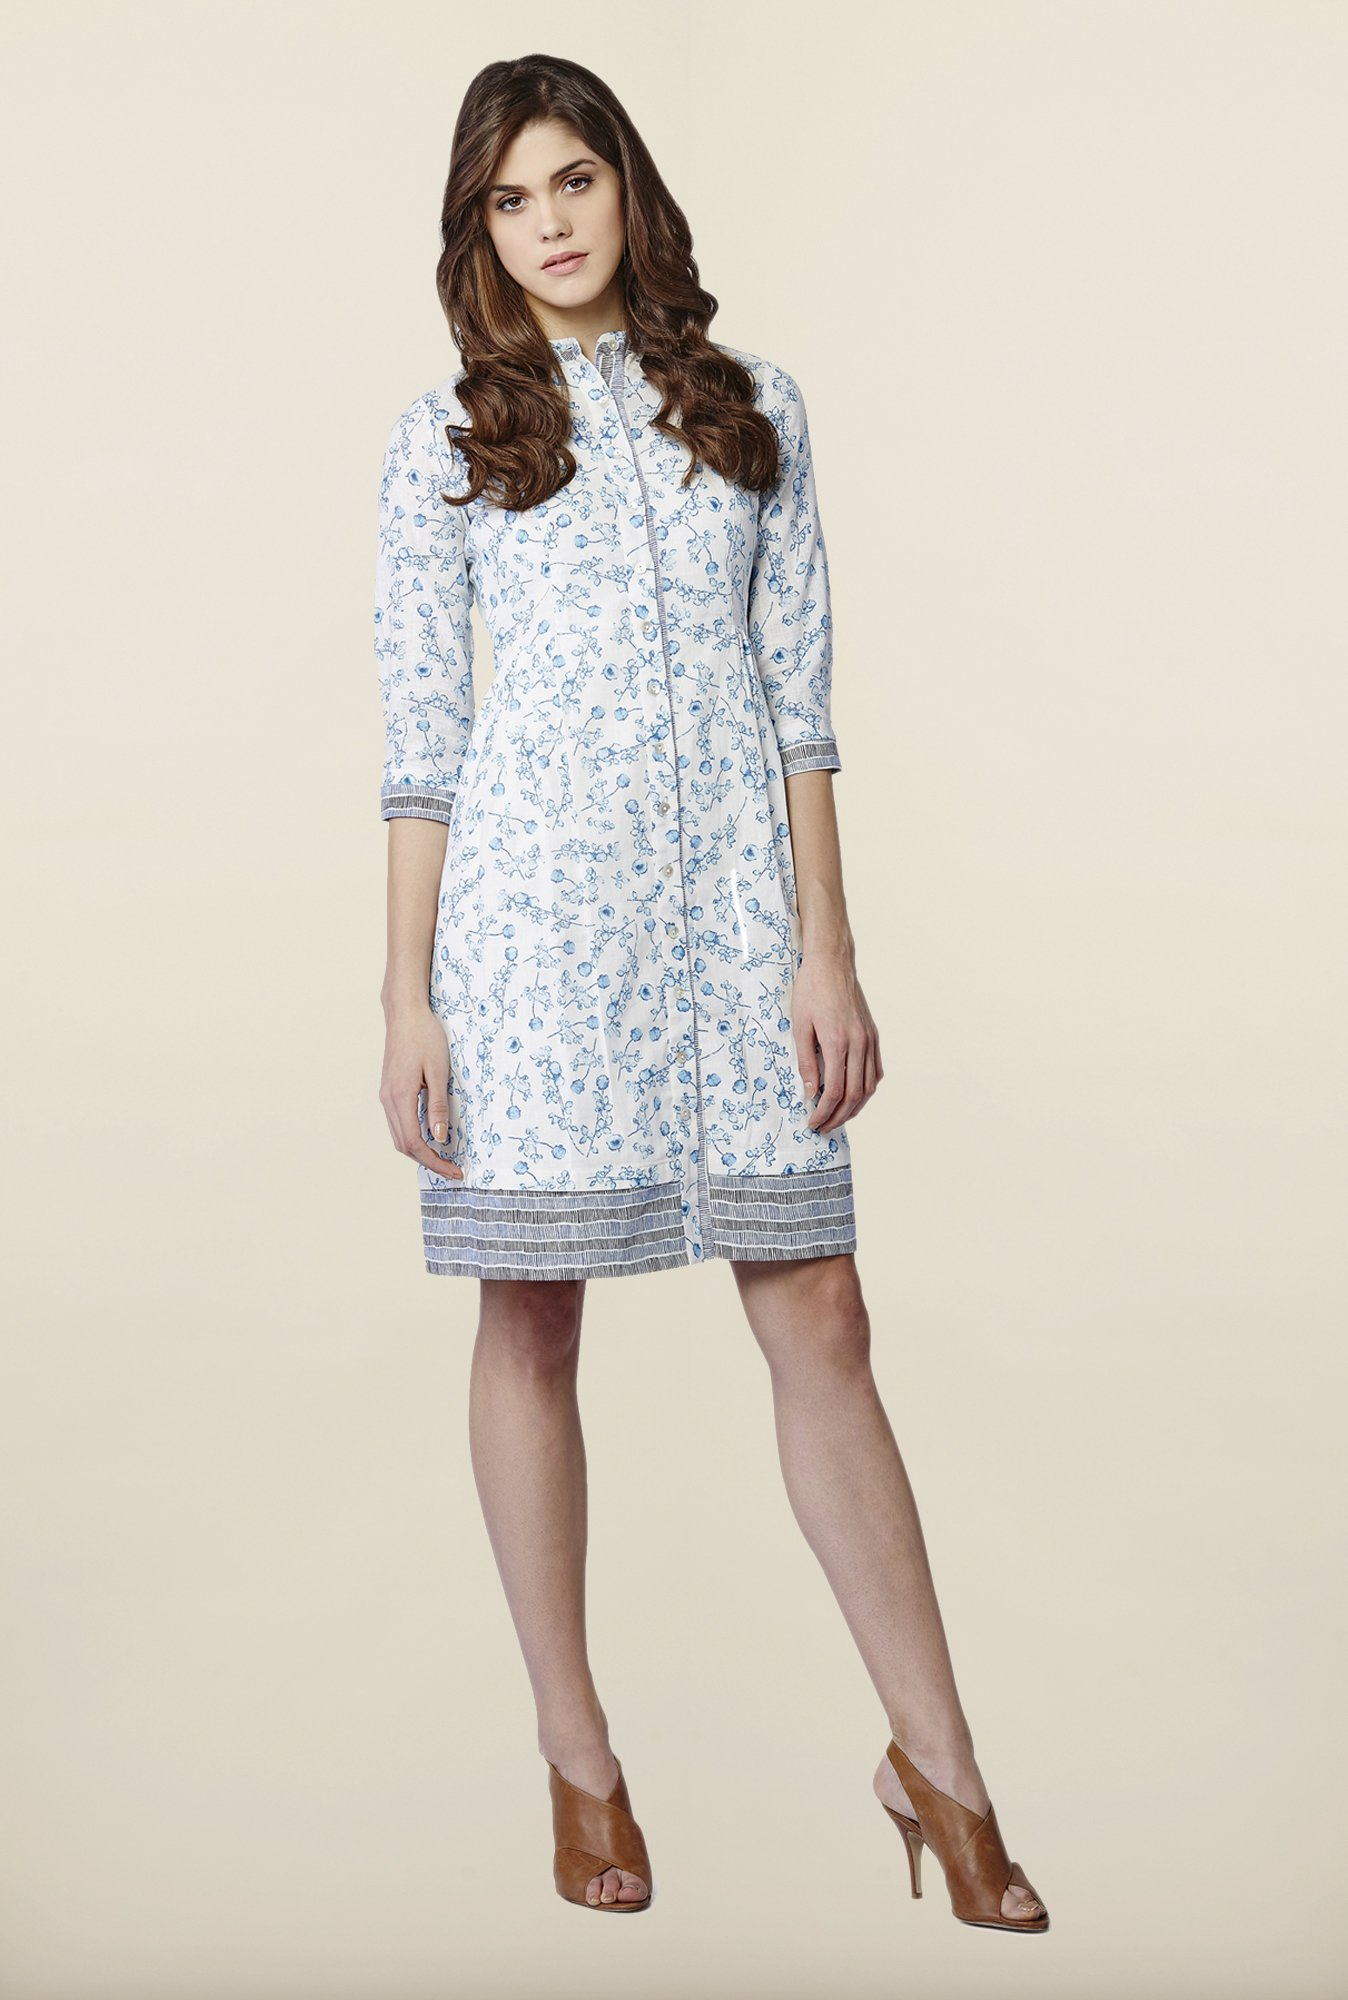 AND Off-White Printed Casual Dress